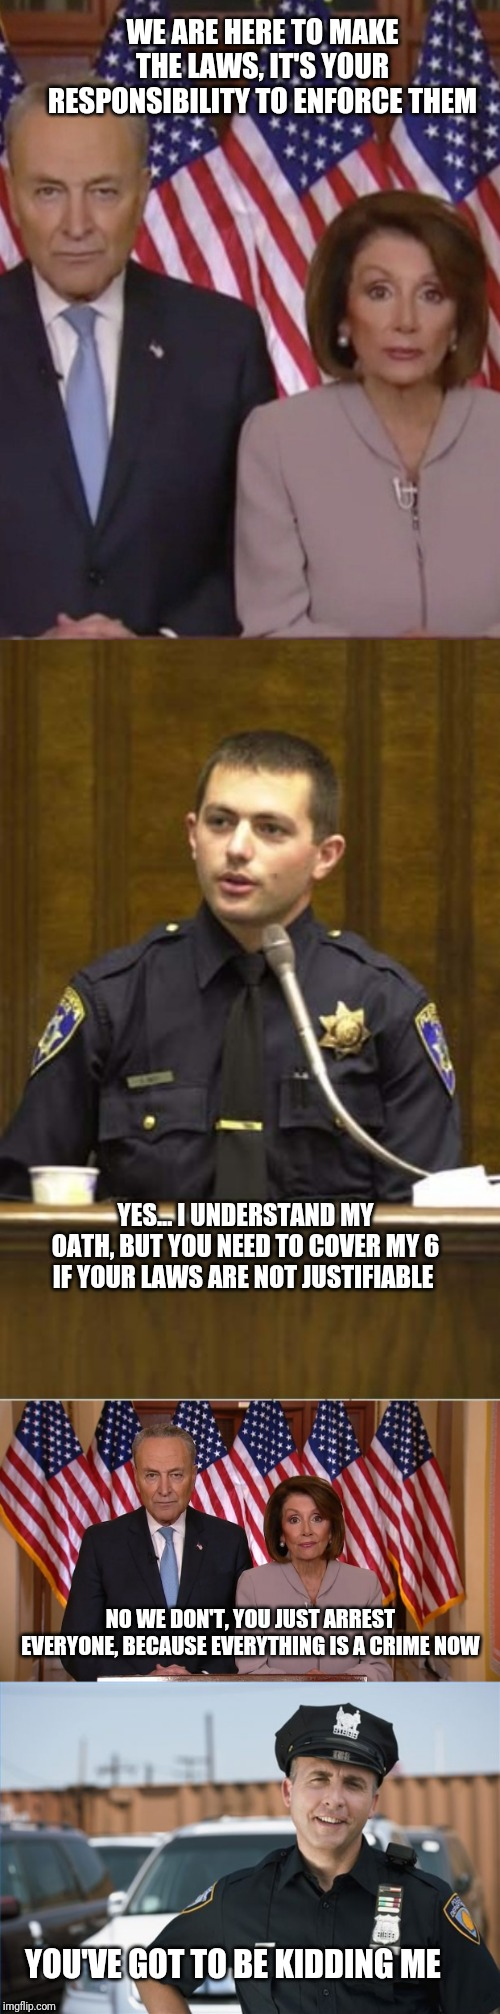 Blue lives matter too. | WE ARE HERE TO MAKE THE LAWS, IT'S YOUR RESPONSIBILITY TO ENFORCE THEM YES... I UNDERSTAND MY OATH, BUT YOU NEED TO COVER MY 6 IF YOUR LAWS  | image tagged in memes,police officer testifying,police office really,two politicians,blue lives matter,thin blue line | made w/ Imgflip meme maker